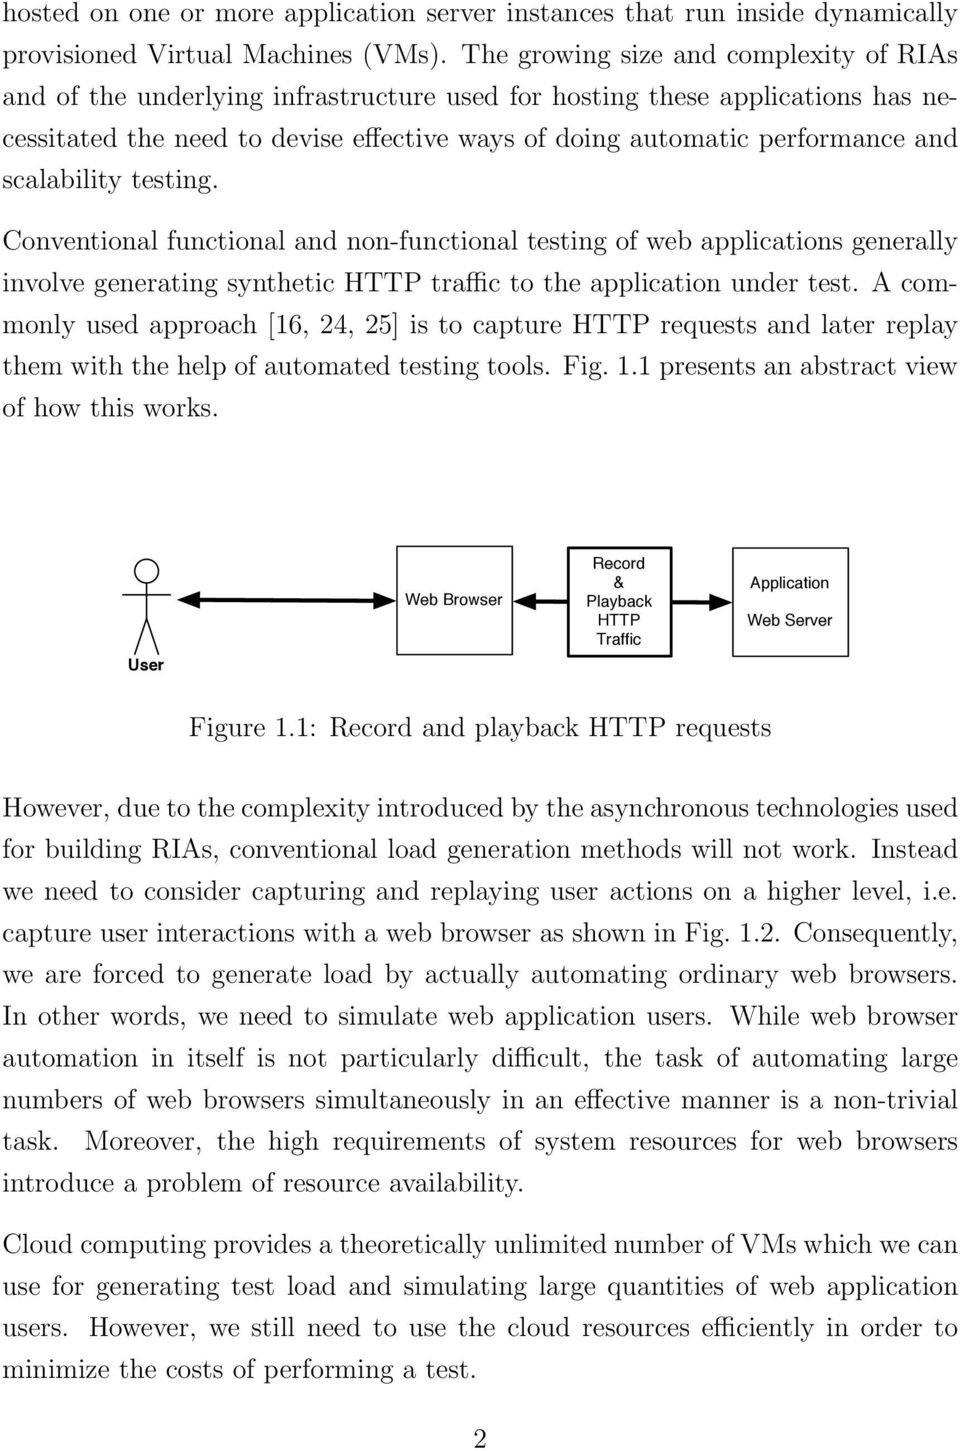 scalability testing. Conventional functional and non-functional testing of web applications generally involve generating synthetic HTTP traffic to the application under test.